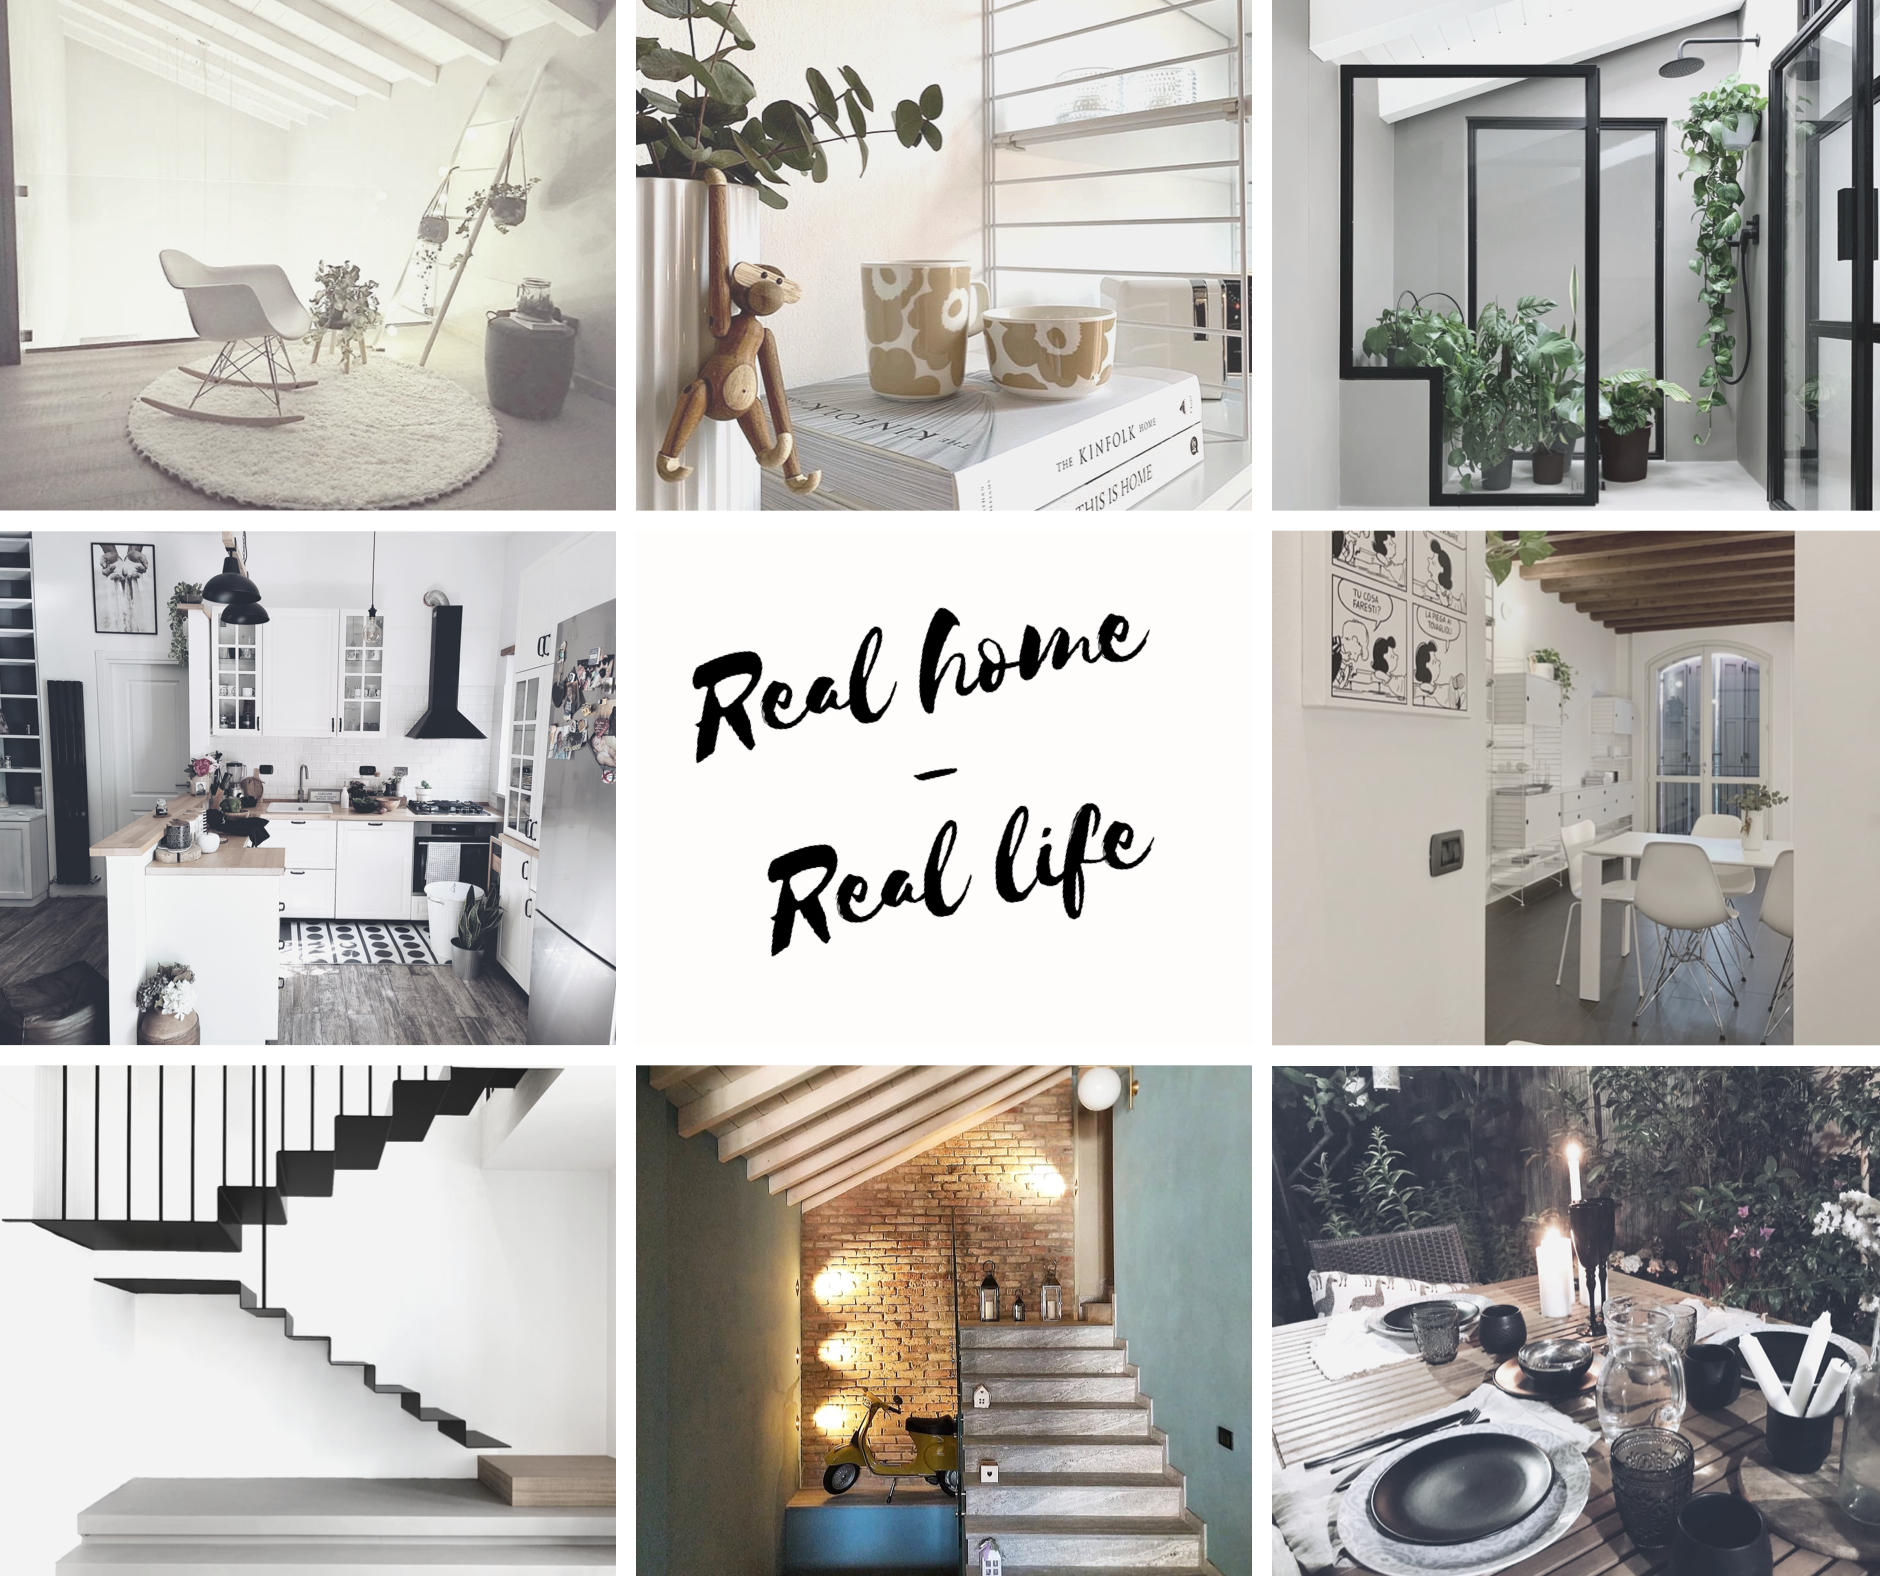 Real home - Real Life il primo mese